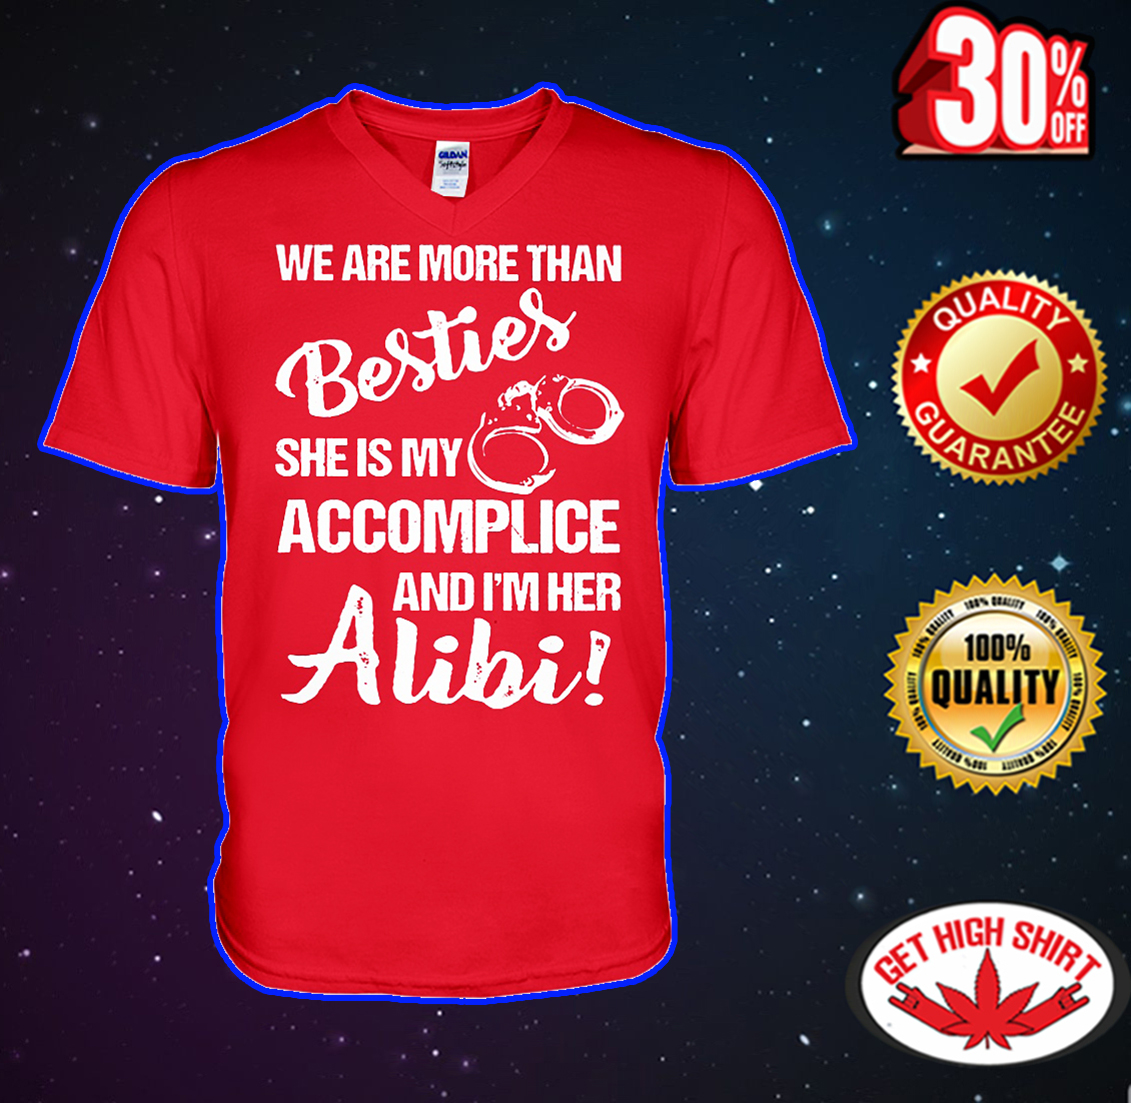 We are more than besties she is my accomplice and I'm her alibi v-neck